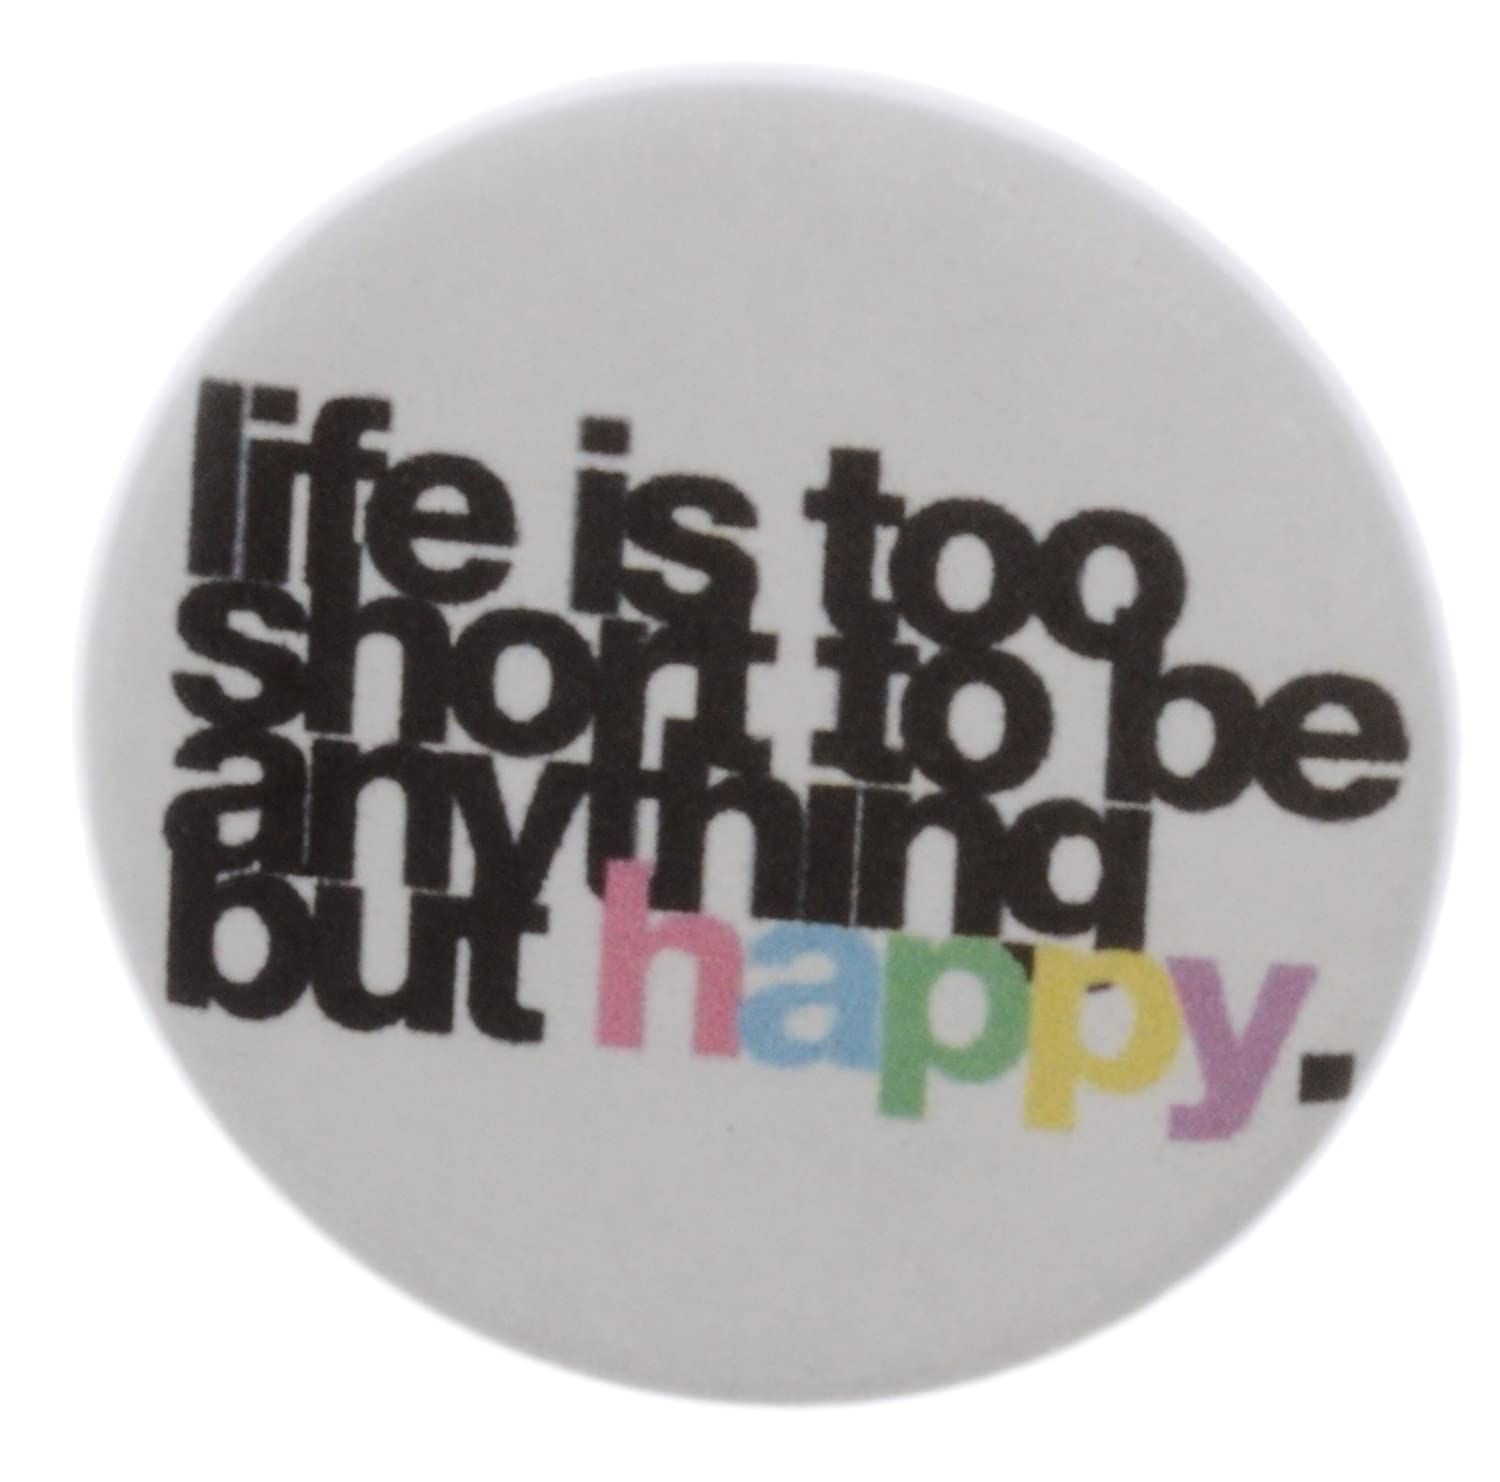 LIFE IS TOO SHORT TO BE ANYTHING BUT HAPPY Pinback Button 1.25 Pin / Badge